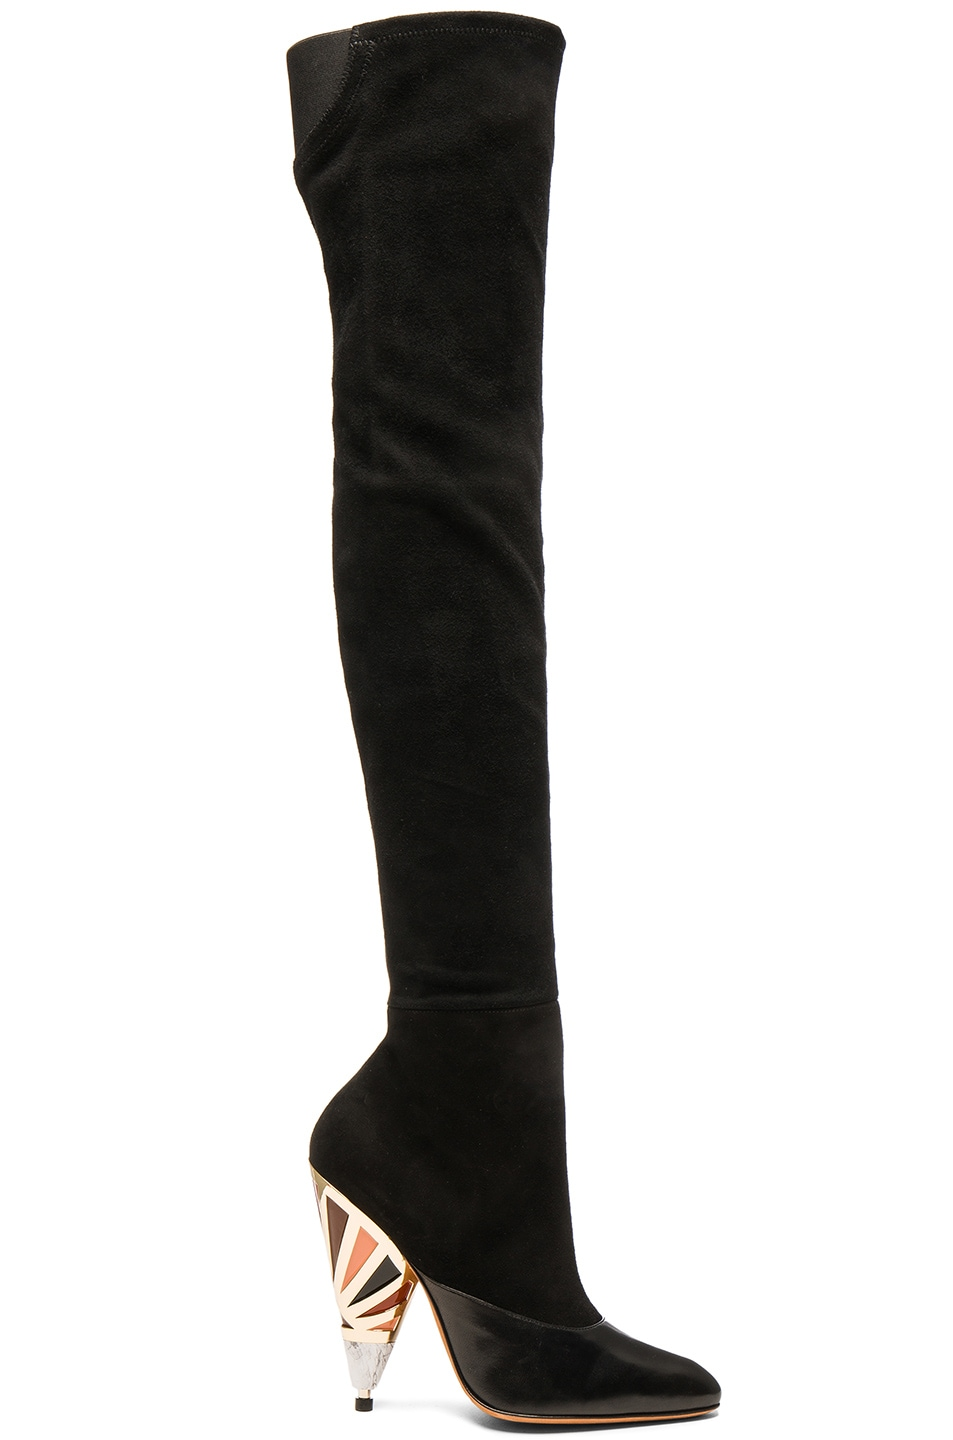 Image 1 of Givenchy Multicolor Heel Suede Over the Knee Boots in Black